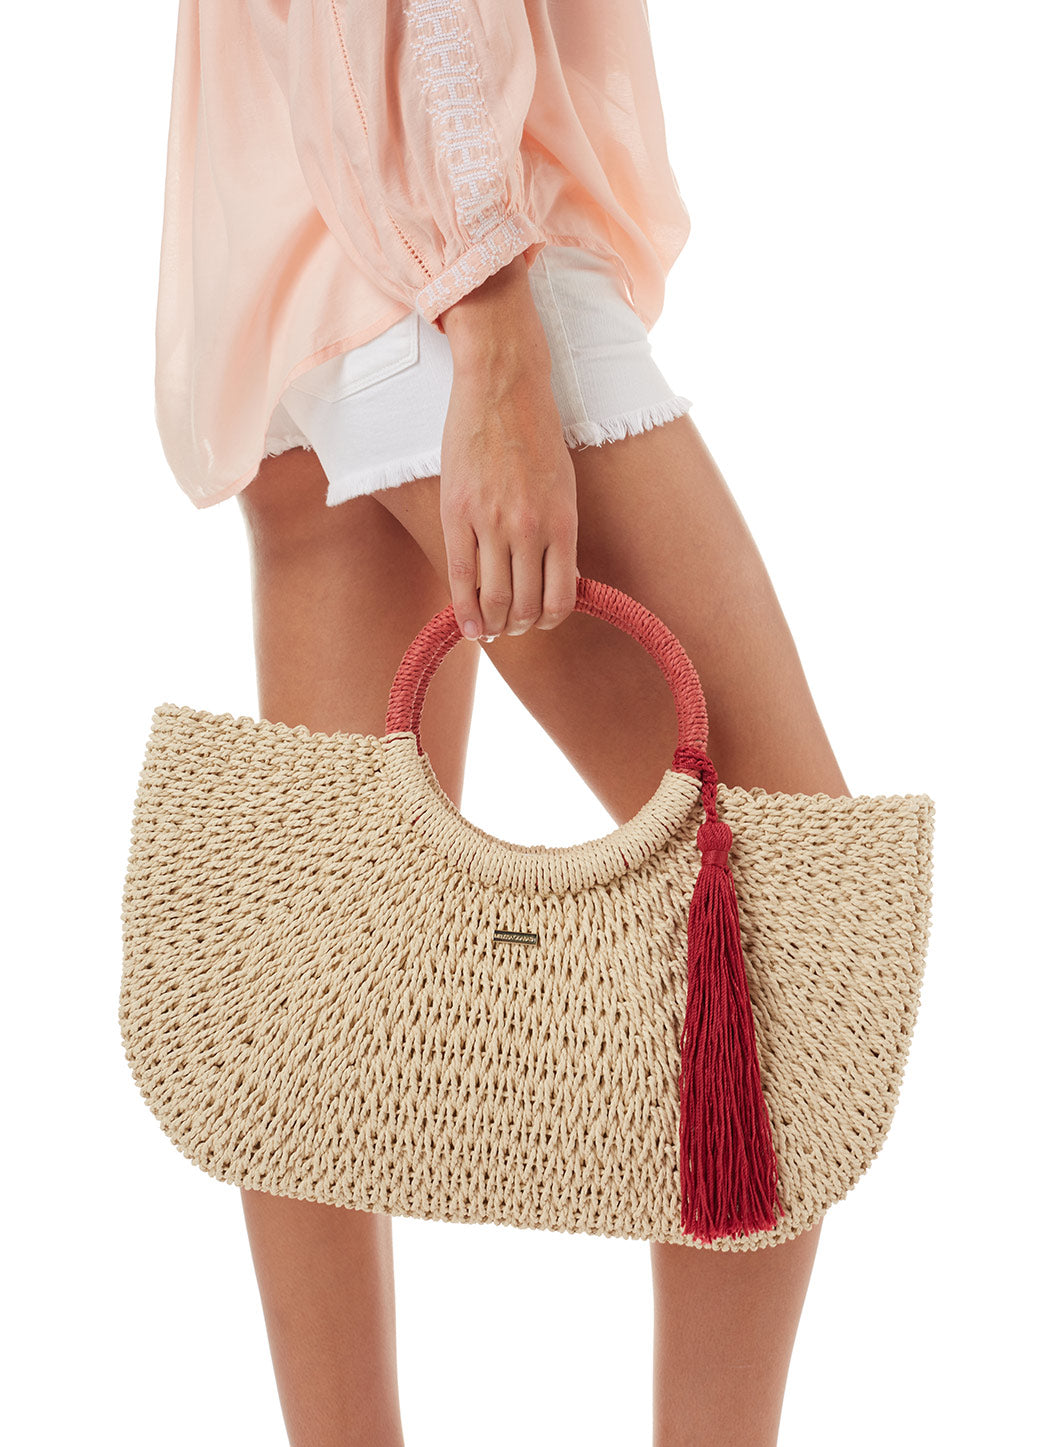 Melissa Odabash Sorrento Woven Basket Tassle Bag Natural Cinnamon